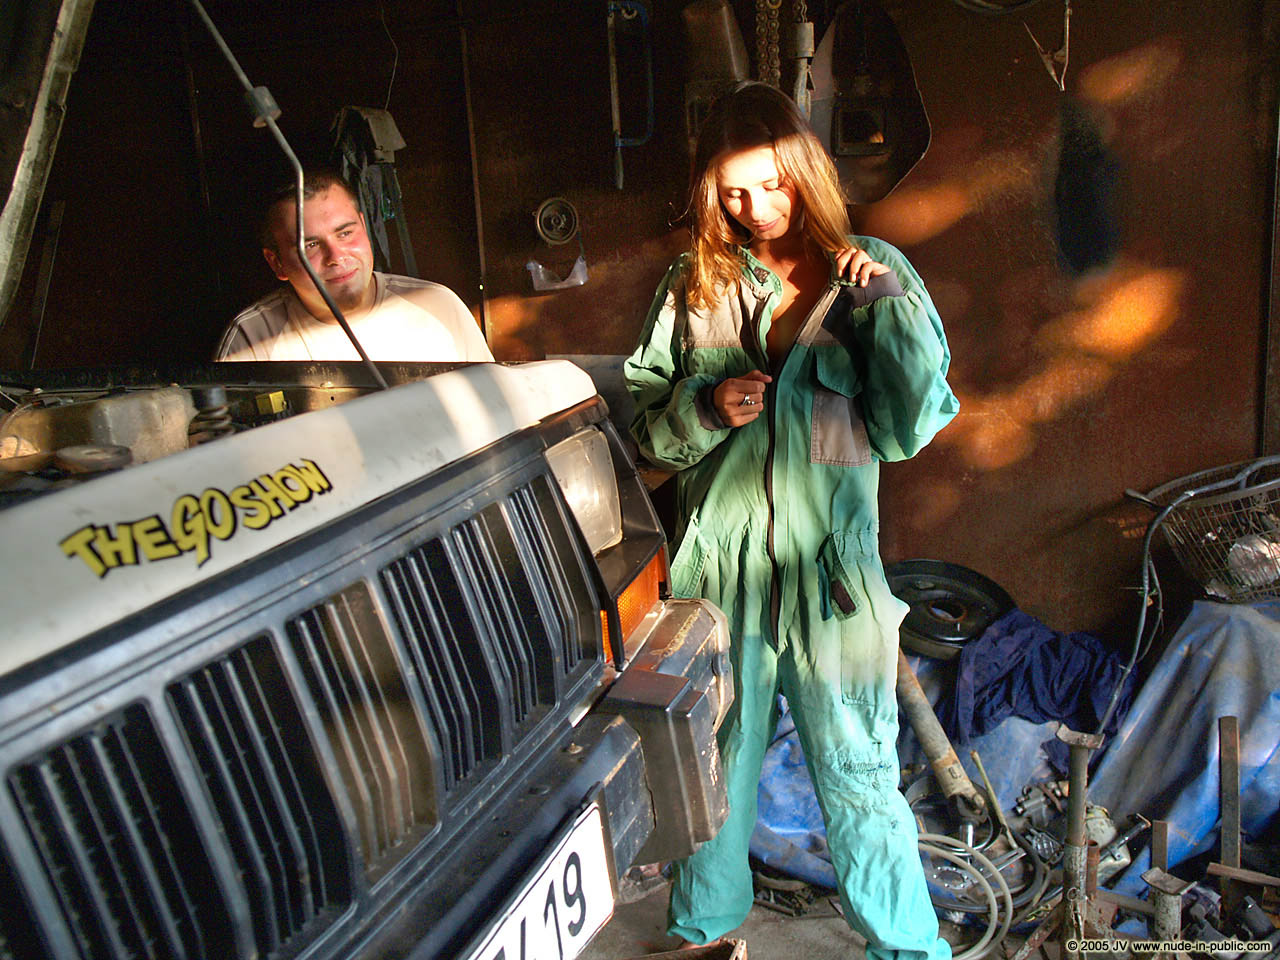 veronika-e-junkyard-cars-mechanic-nude-in-public-02